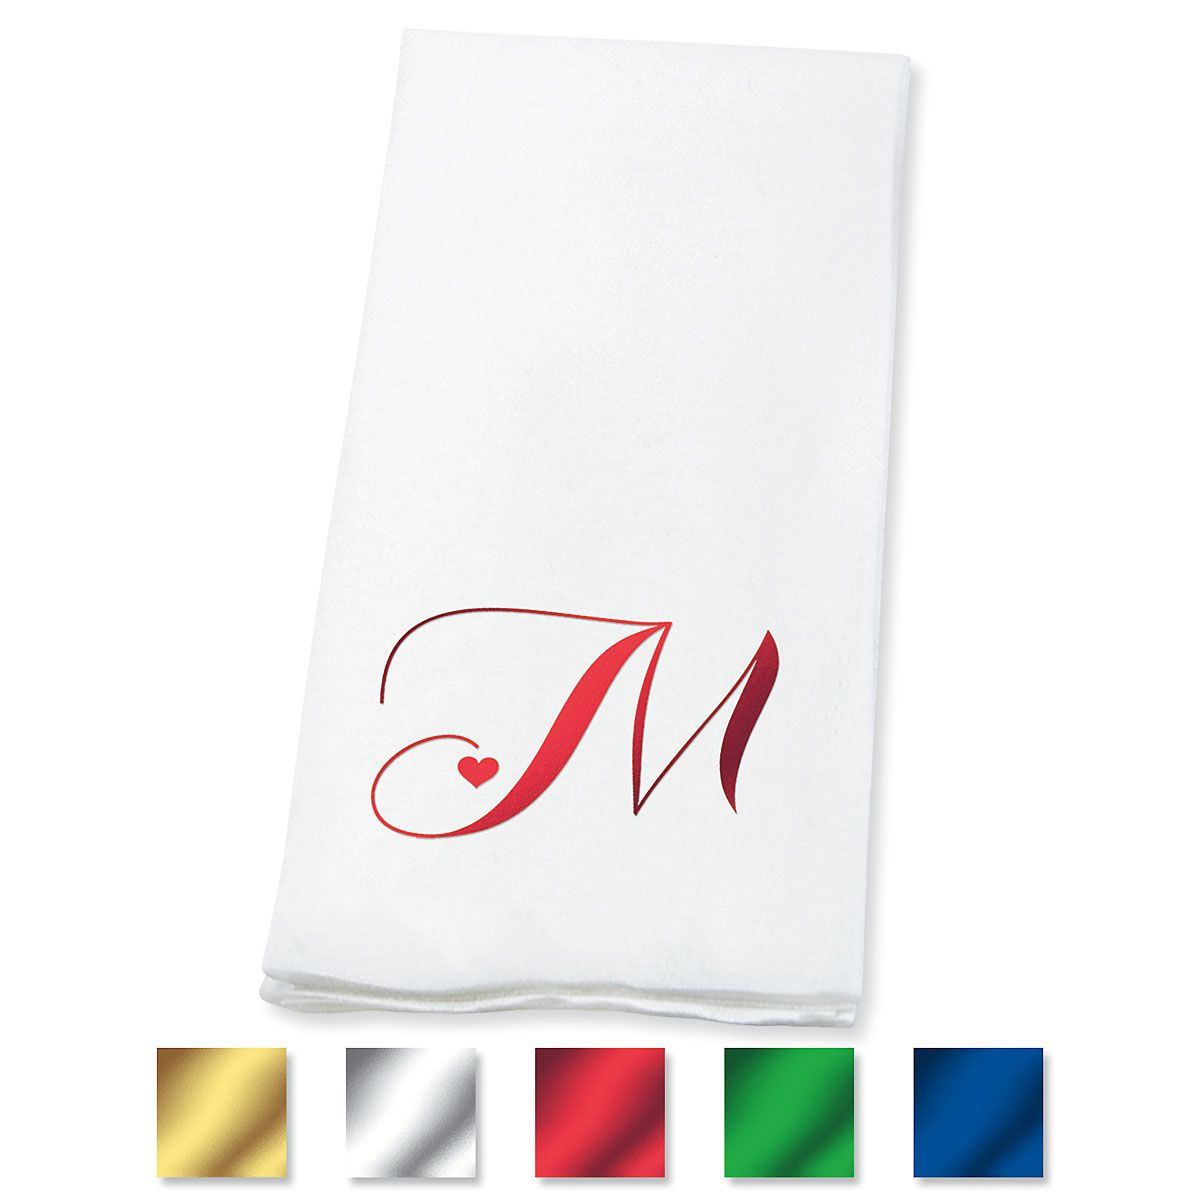 Heart Initial Disposable Hand Towels